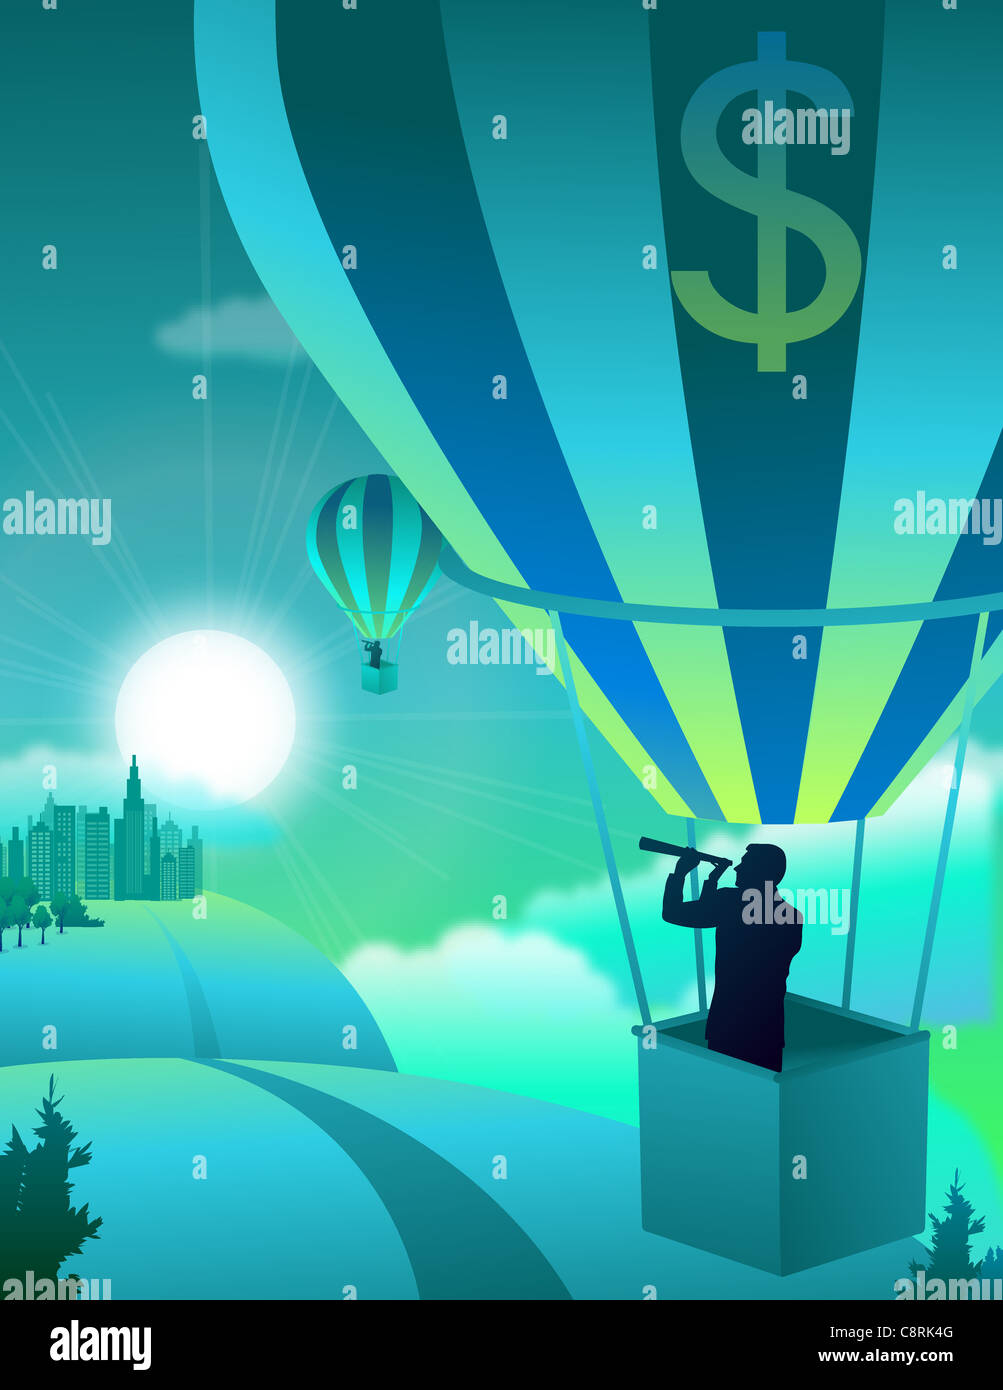 Illustration of man with telescope in parachute - Stock Image